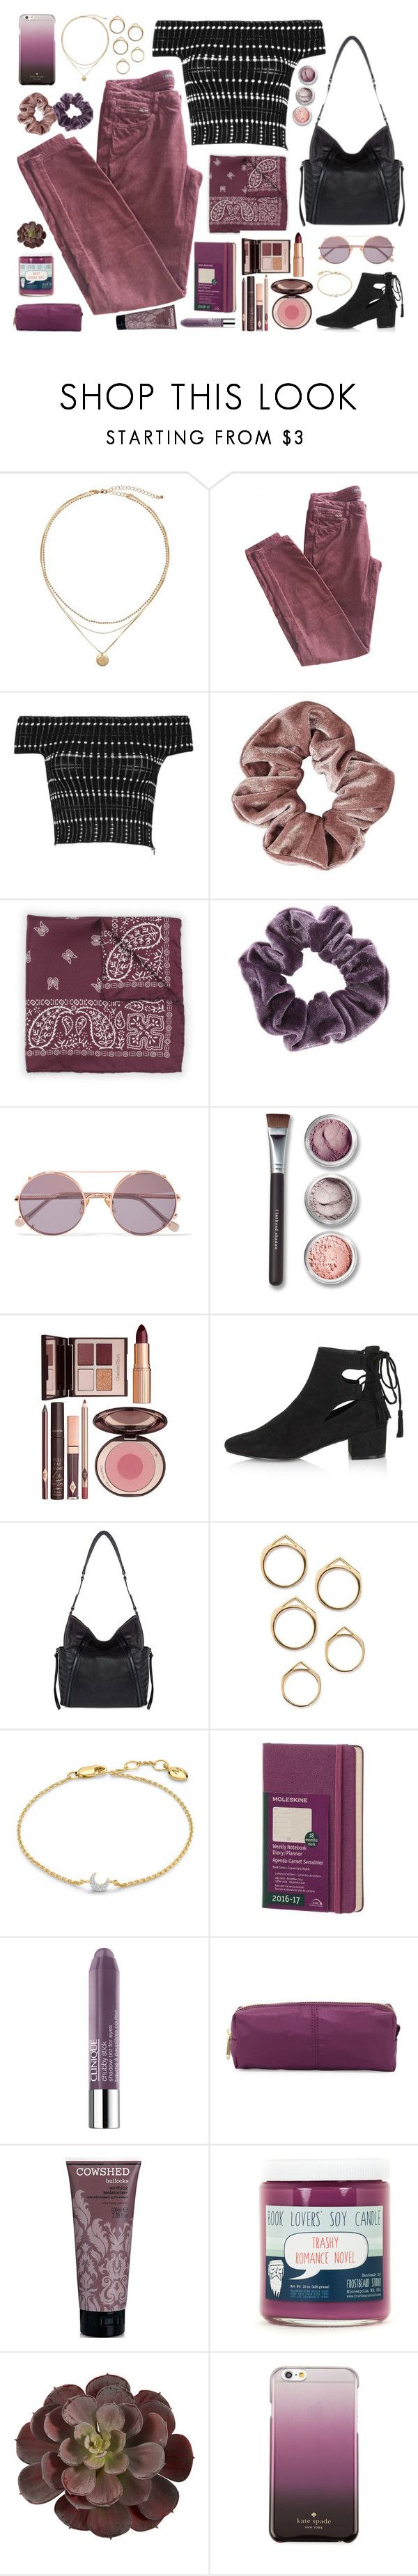 """""""Hey angel, Do you look at us and laugh when we hold on to the past?"""" by povring ❤ liked on Polyvore featuring Maje, Alexander McQueen, Club Monaco, Topshop, Sunday Somewhere, Bare Escentuals, Charlotte Tilbury, Kooba, Missoma and Clinique"""